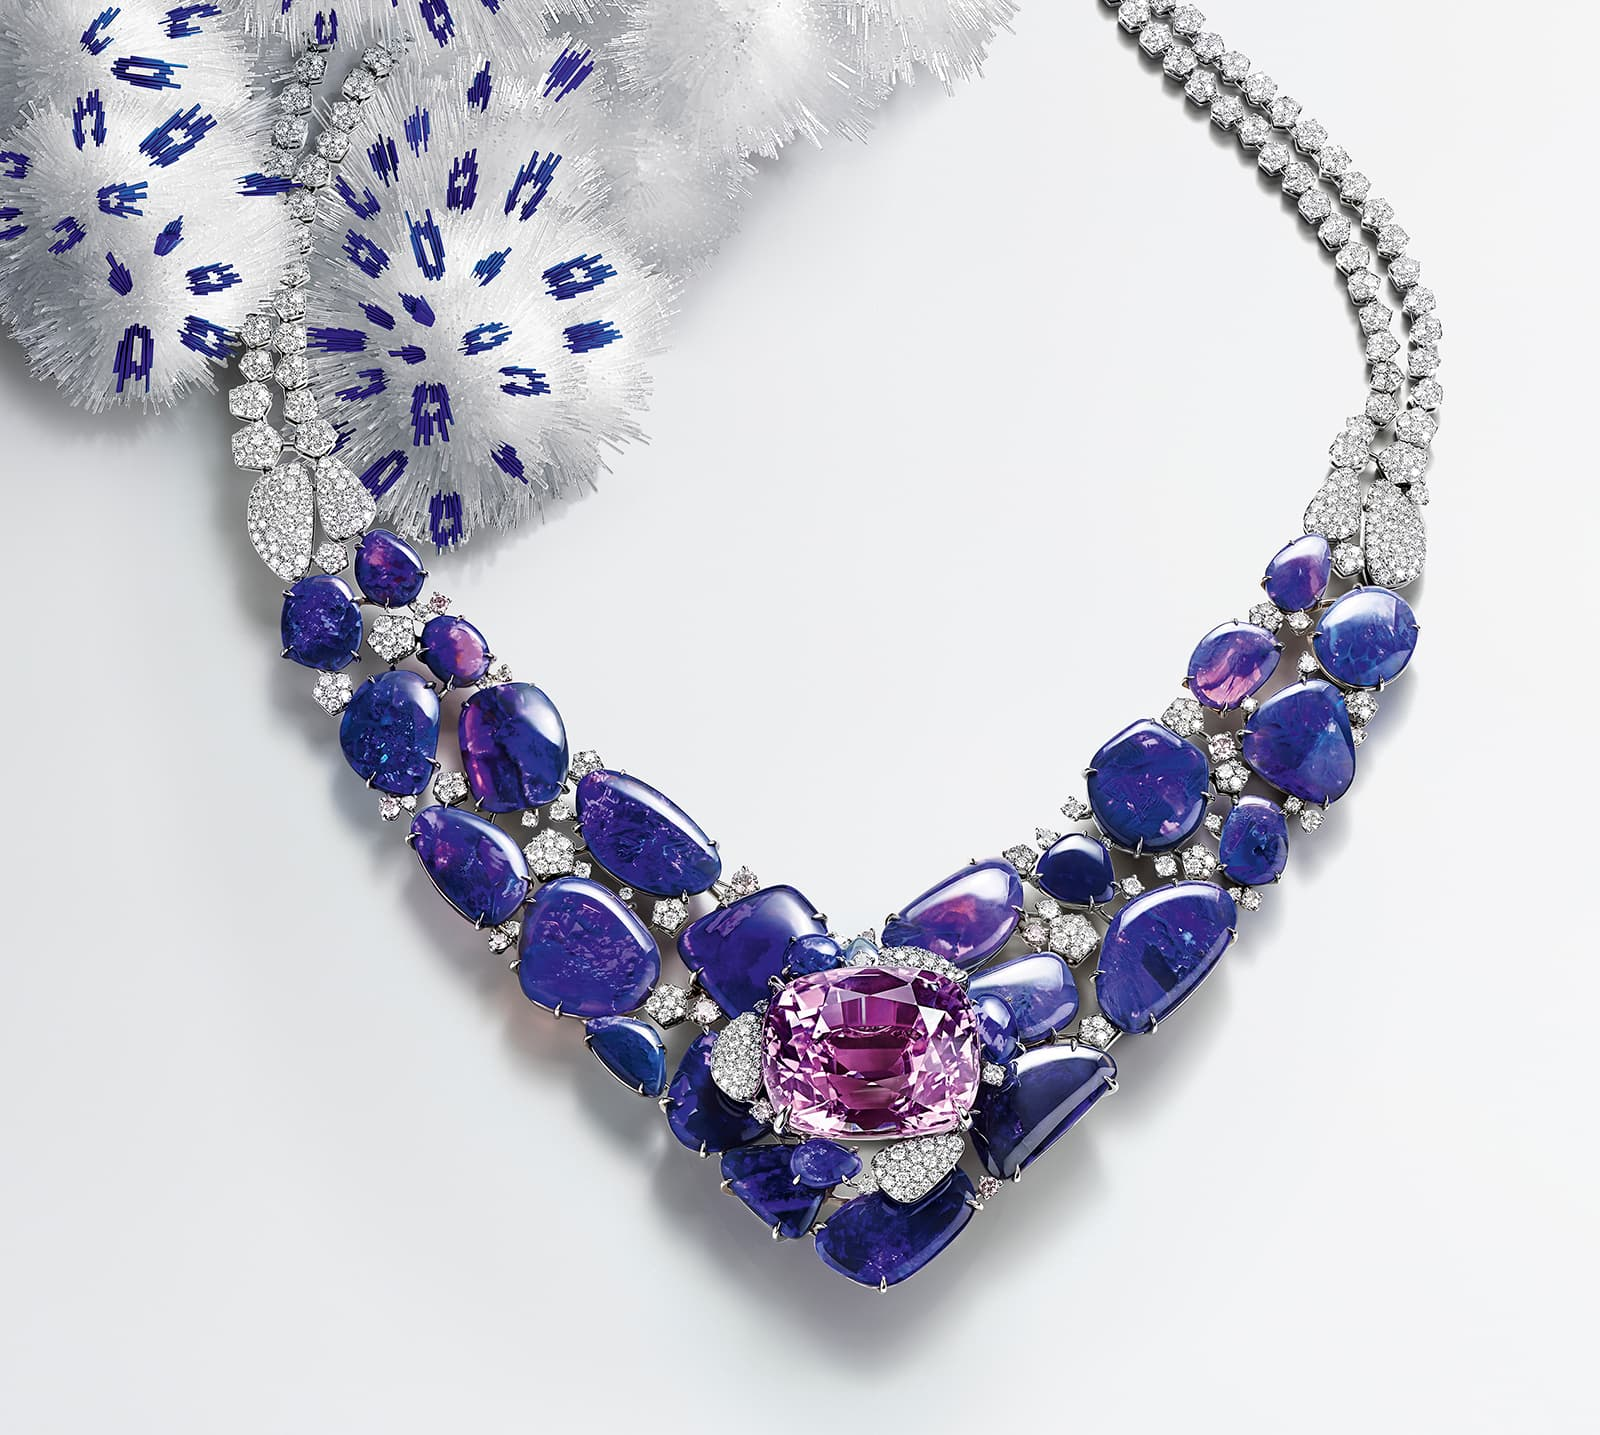 Cartier SUR[NATUREL] high jewellery necklace, set with a 71.80 carat kunzite, black opals and diamonds